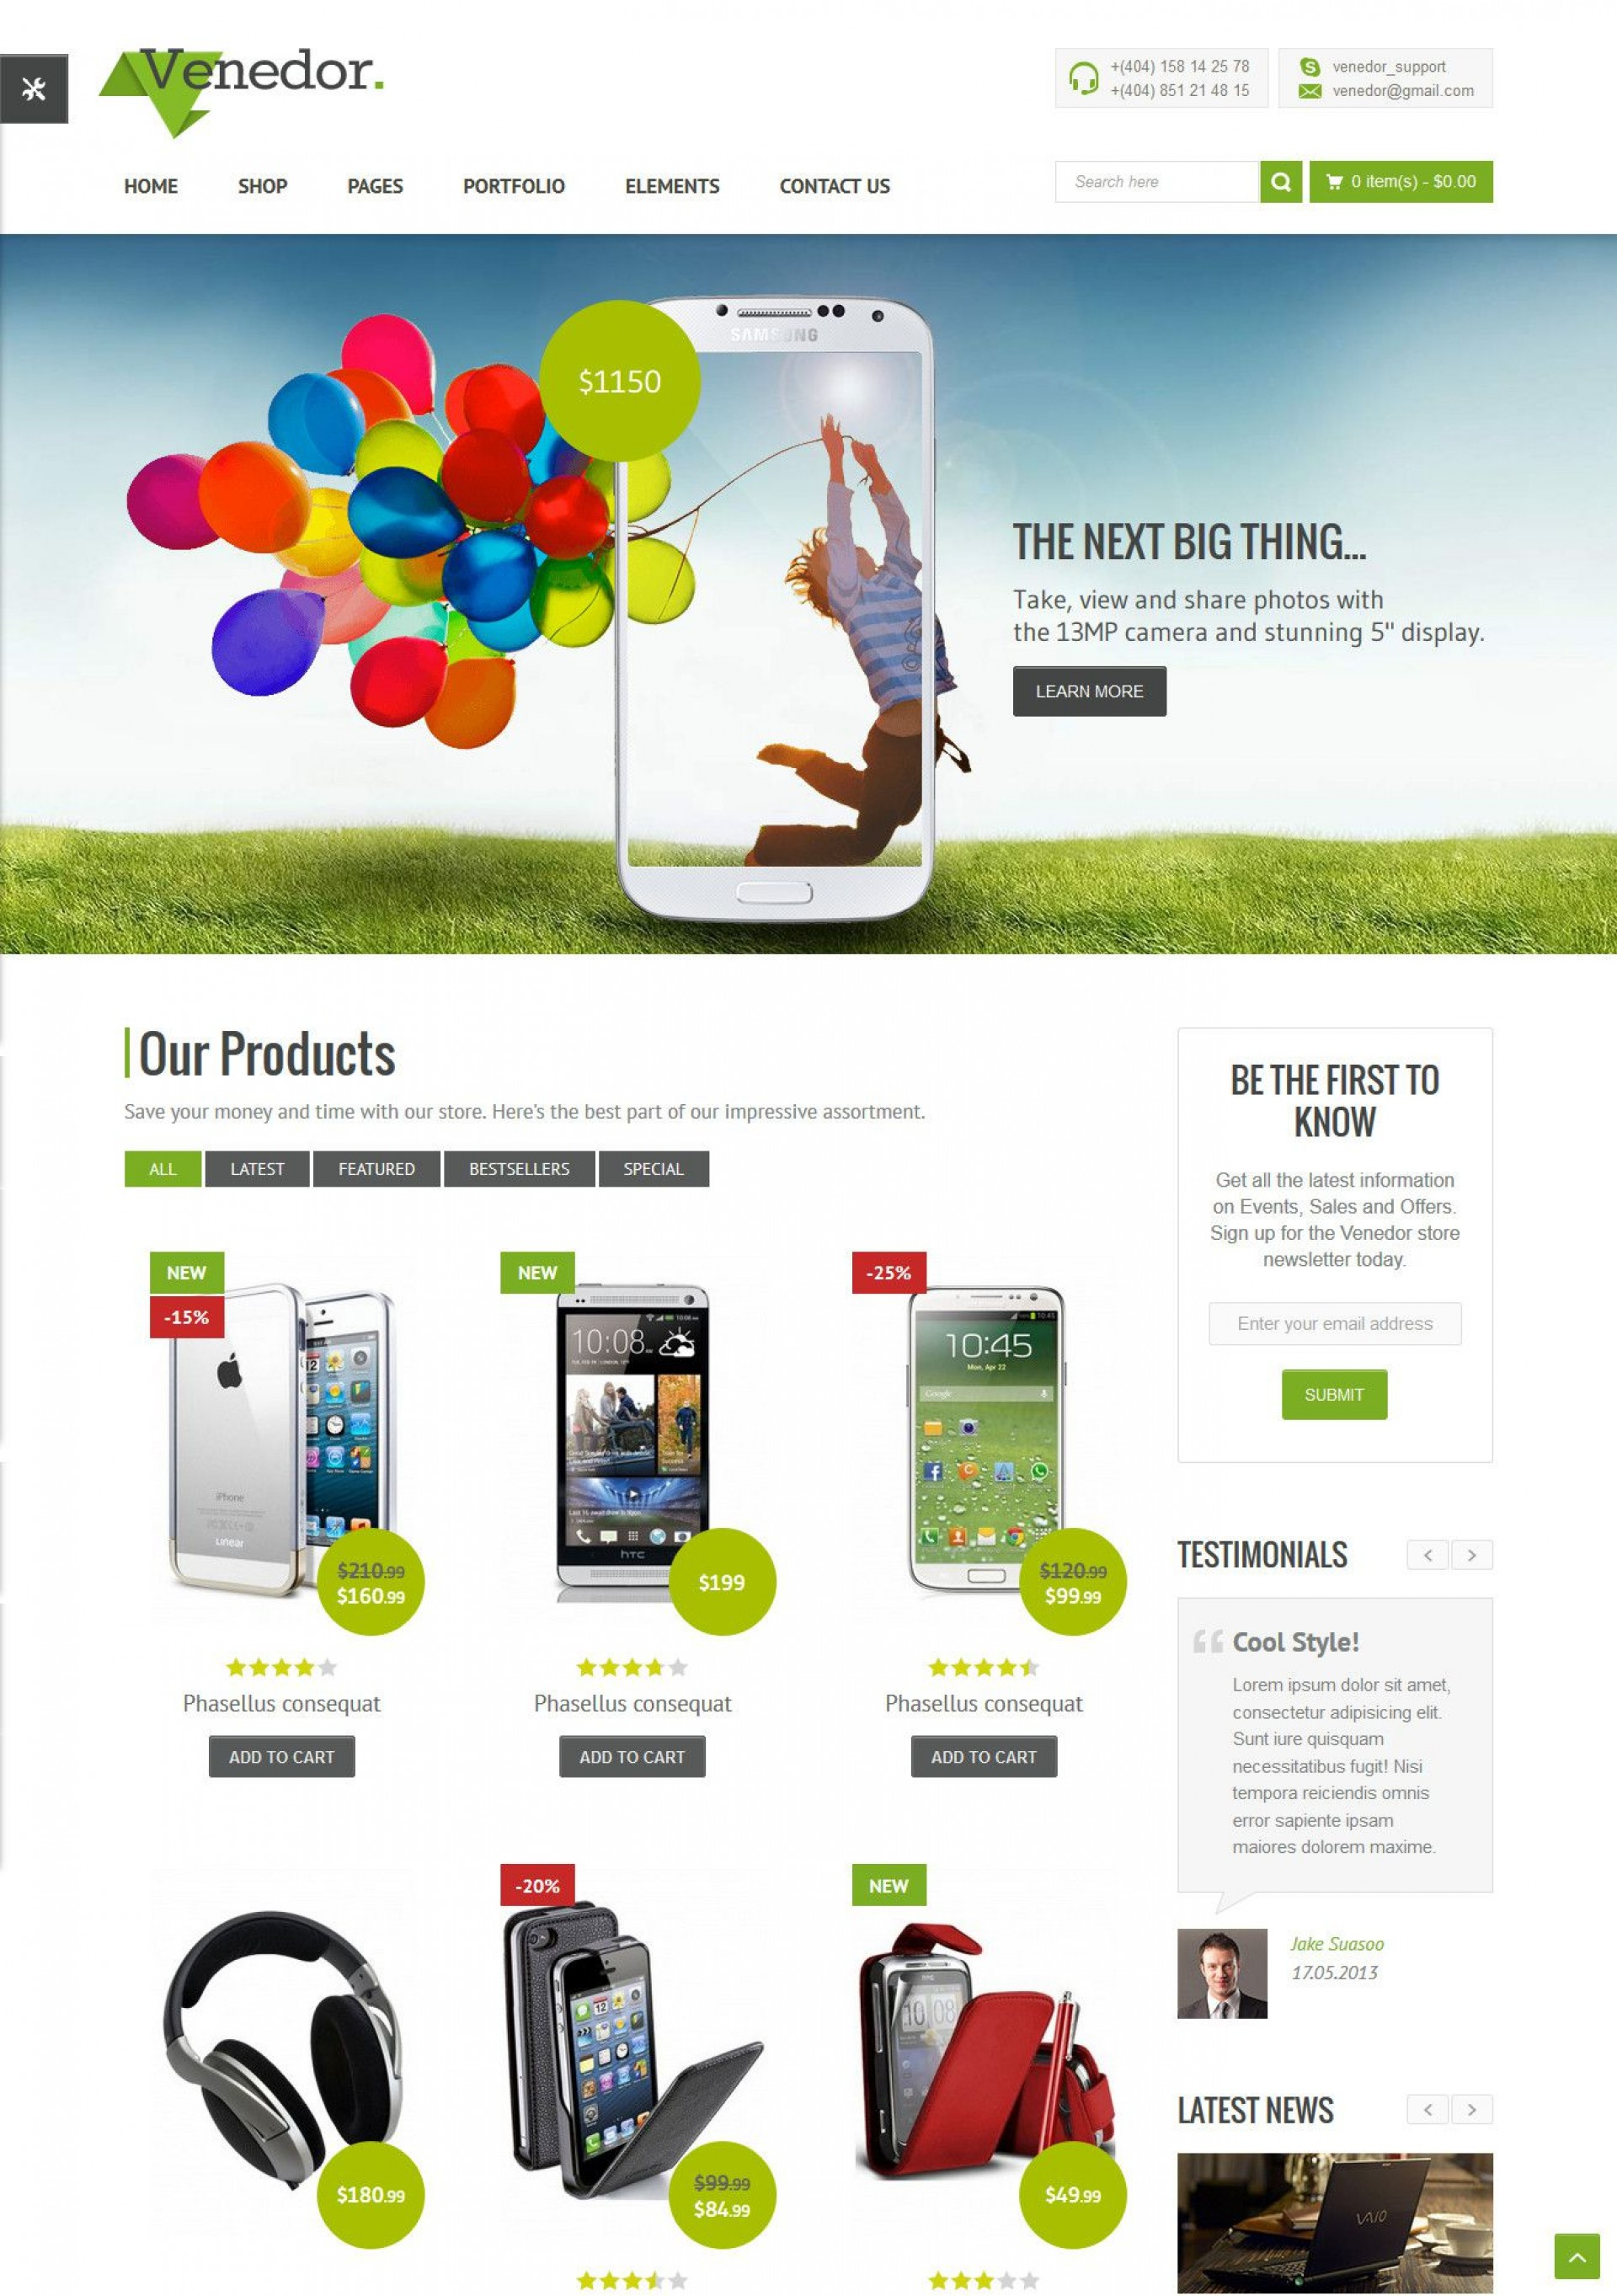 014 Sensational Free Commerce Website Template Photo  Wordpres Ecommerce Download Responsive Html Cs1920